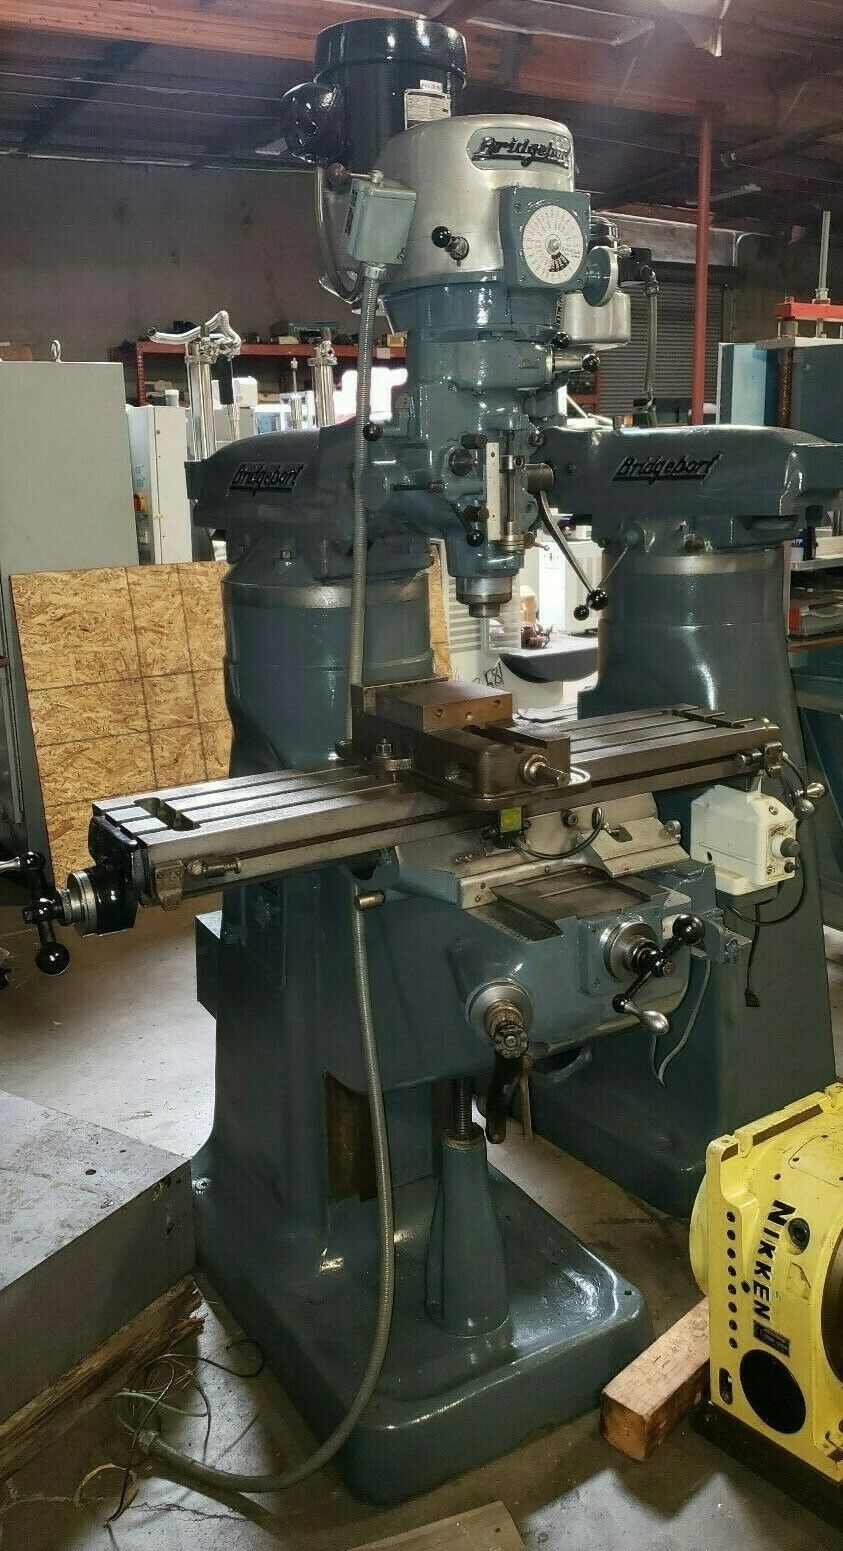 BRIDGEPORT VARI SPEED MILLING MACHINE WITH IMPECCABLE CHROME WAYS / POWER FEED